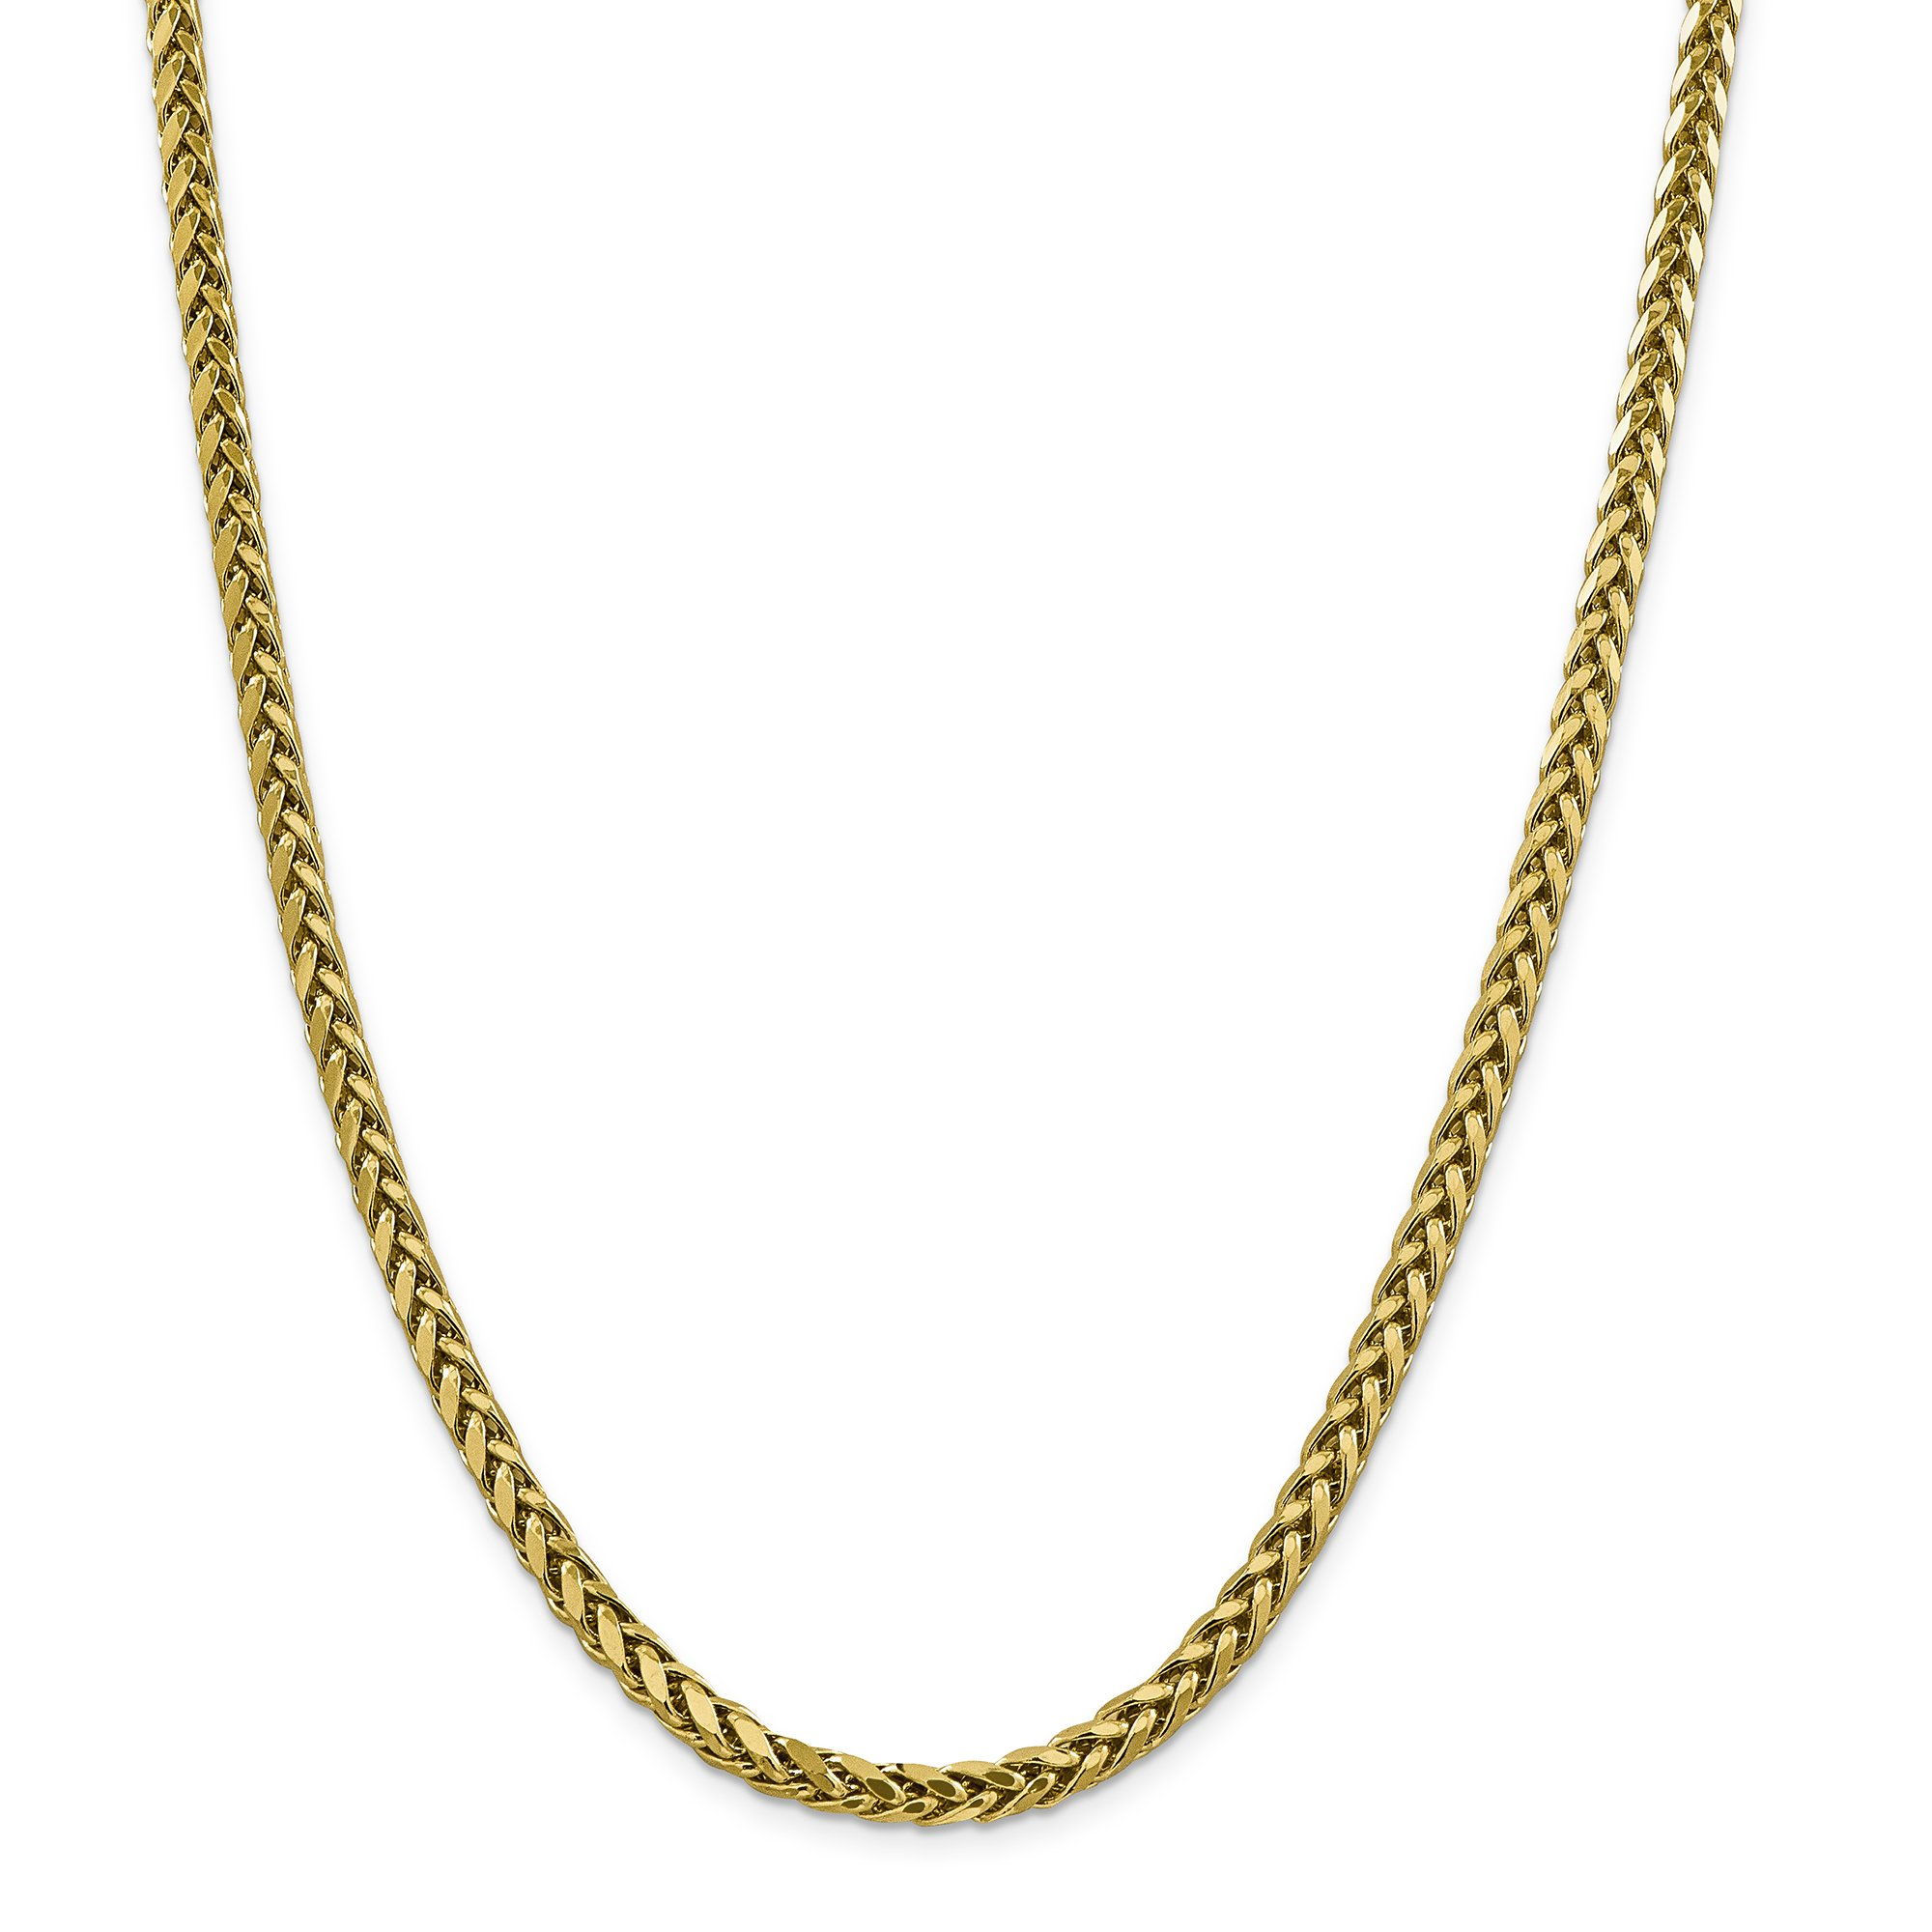 ICE CARATS 14k Yellow Gold 5mm Link Wheat Chain Necklace 18 Inch Spiga Oval Fine Jewelry Gift Set For Women Heart by ICE CARATS (Image #1)